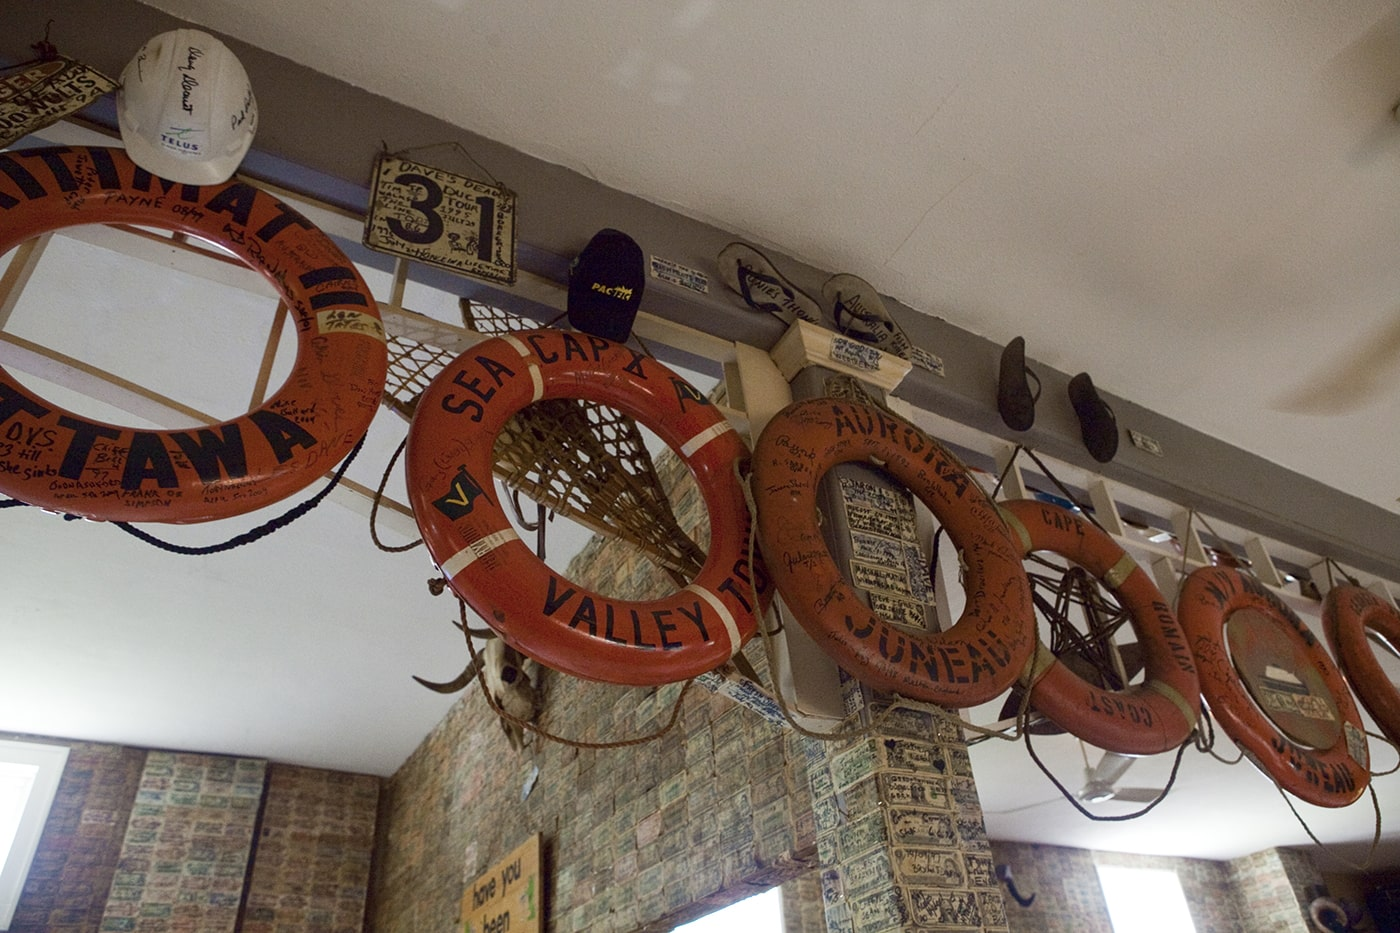 Life preservers hang on the walls of the Glacier Inn in Hyder, Alaska.